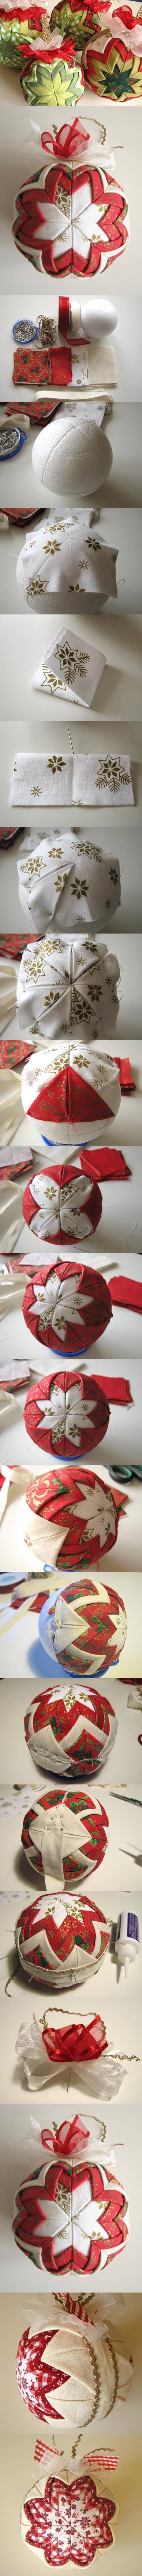 DIY Patchwork for Christmas DIY Patchwork for Christmas by Bohemian Boulevard Good picture tutorial.